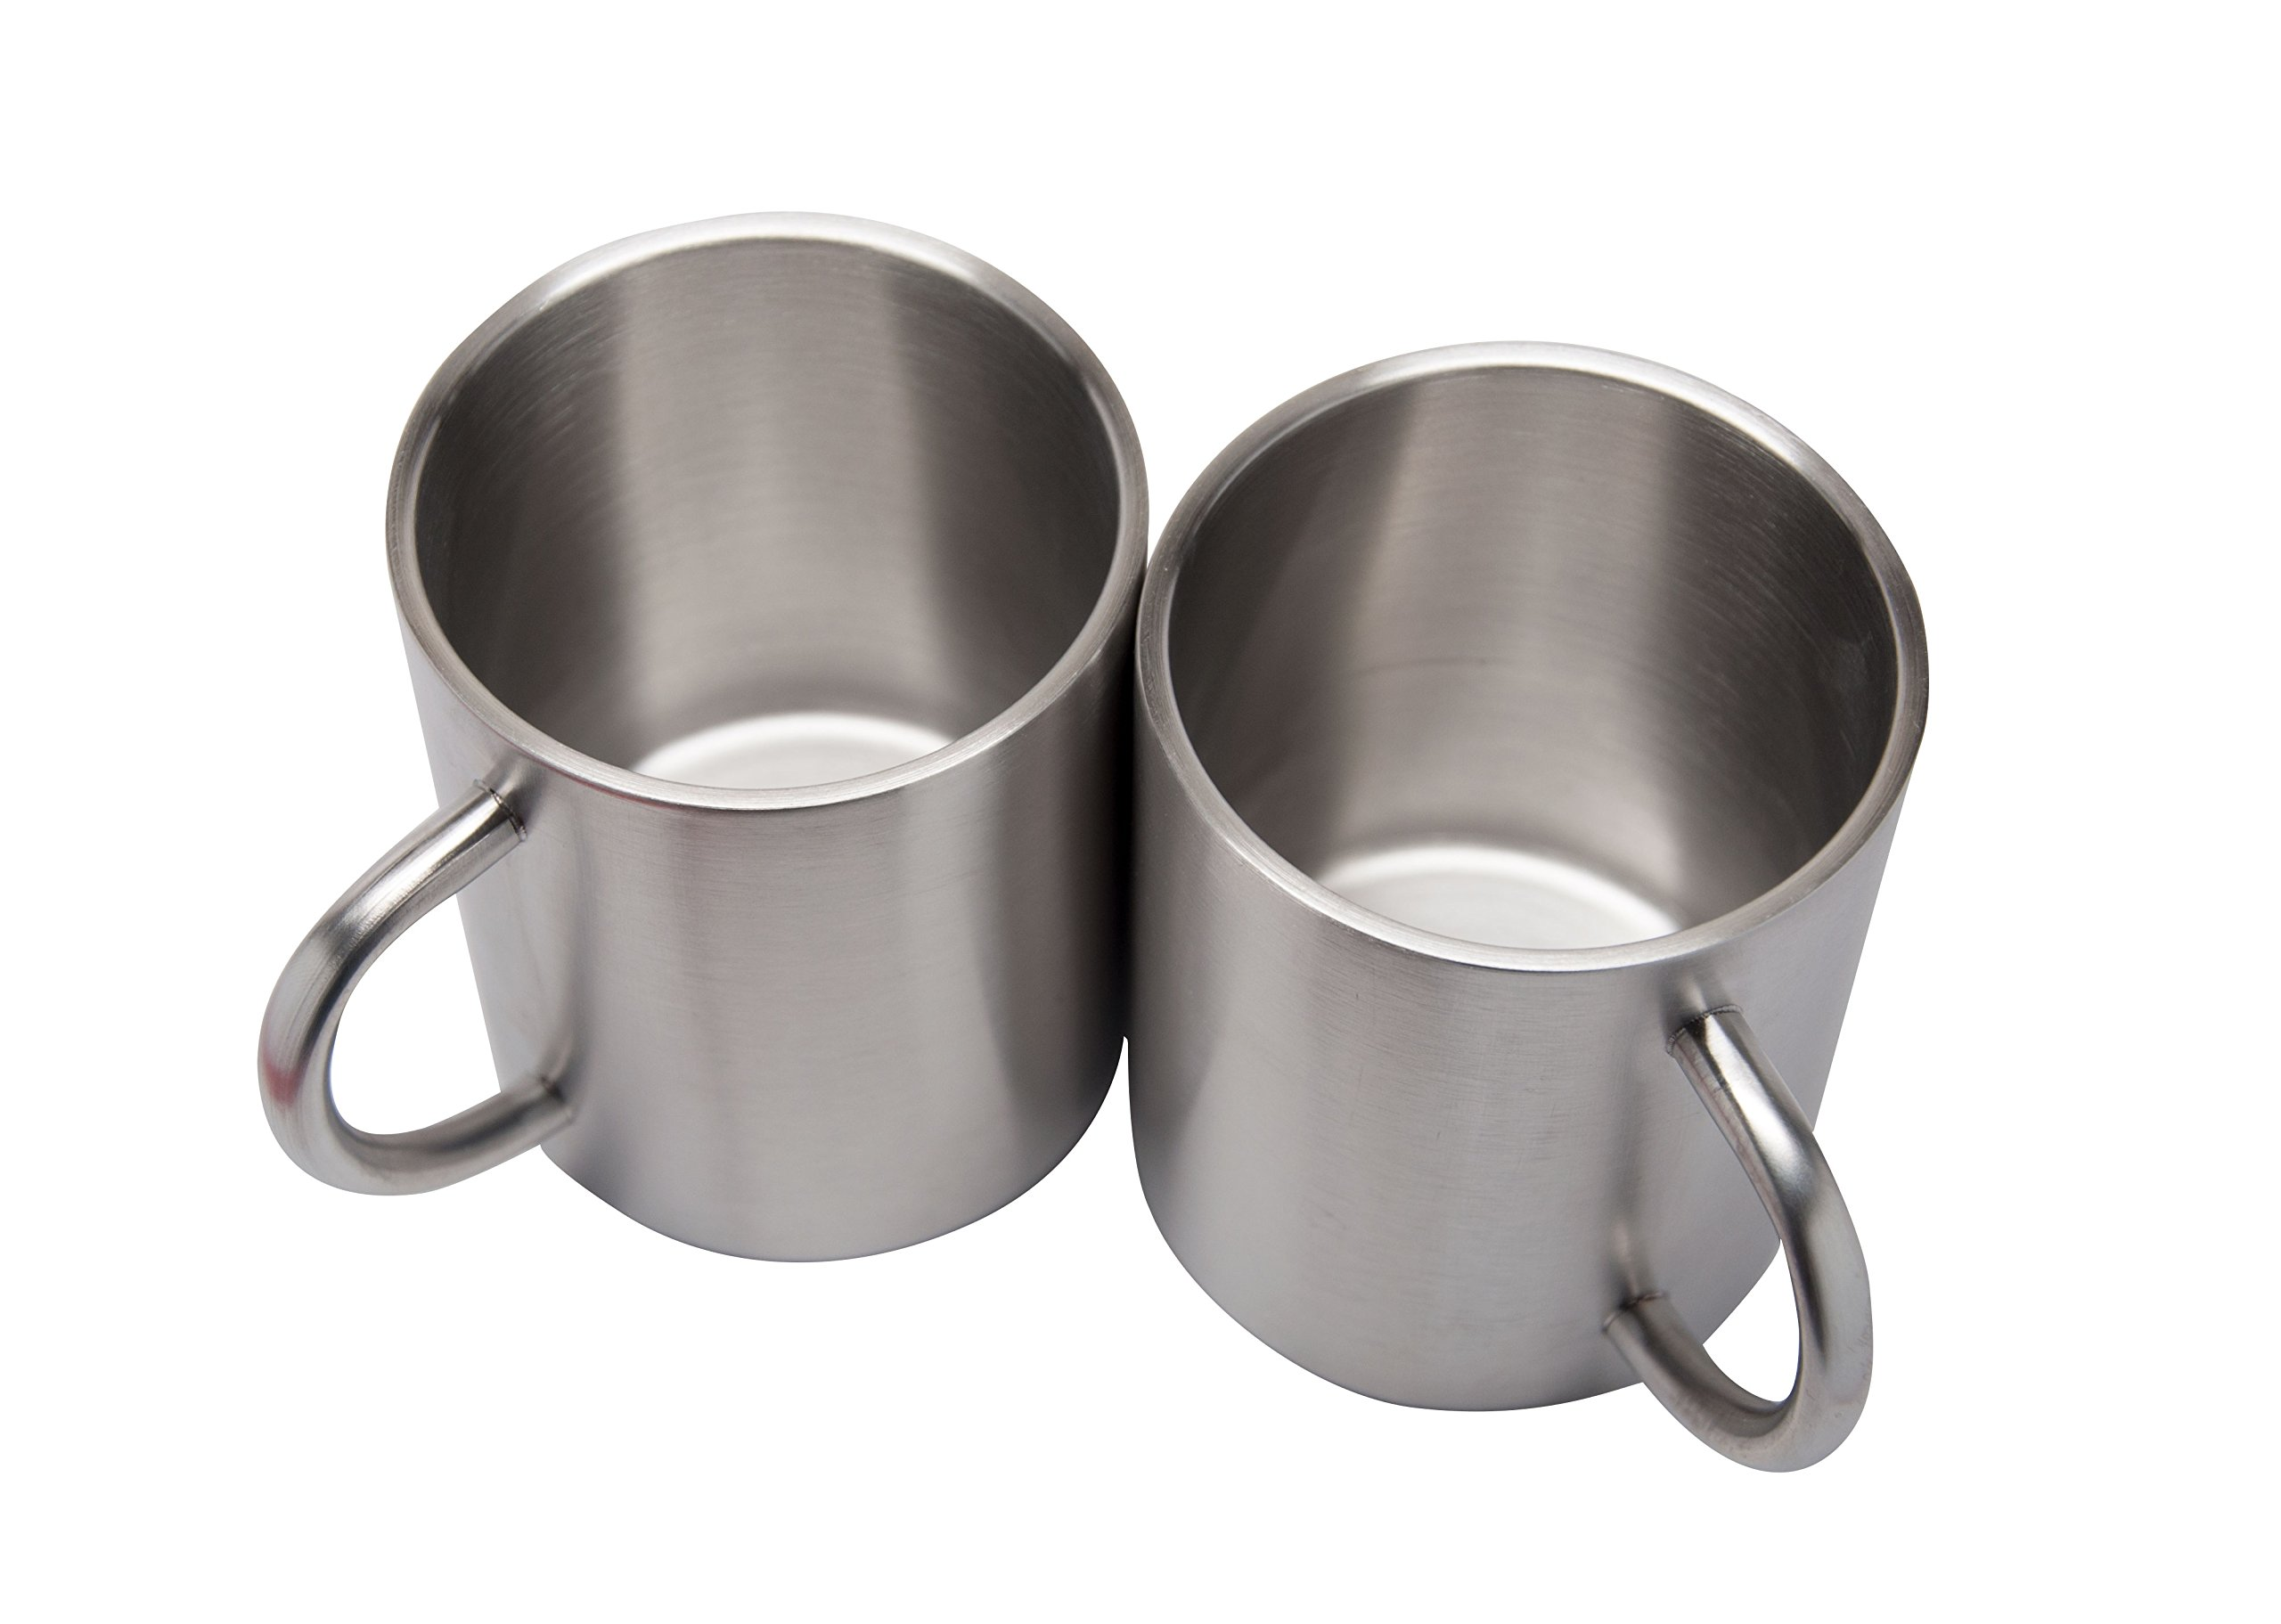 2 Pack Stainless Steel 15 Oz Double Walled Camping Cups 100% BPA Free Metal Mugs Outdoor Camp Cookware Military Surplus BBQ Hunting Accessories Bar BQ 4 Inch by Xena Intelligent Security (Image #5)